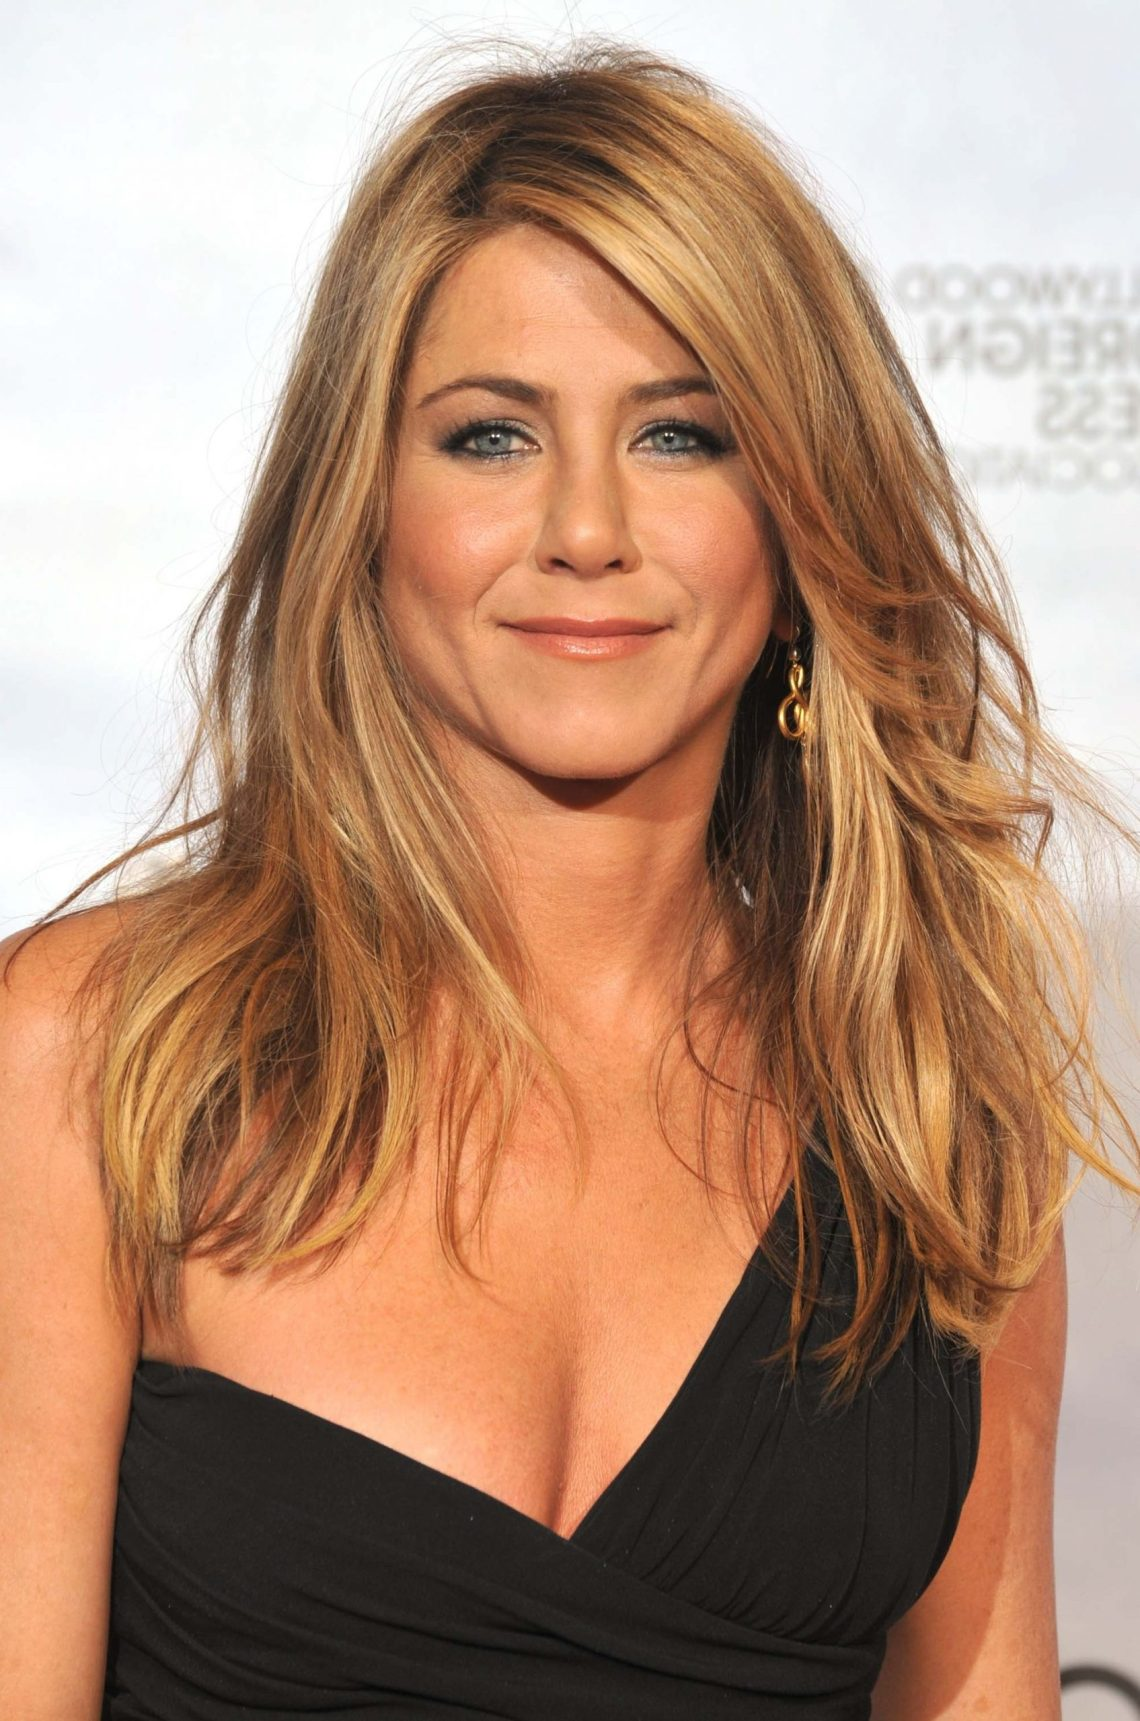 30 Must Try Hairstyles For Women Over 40 | Haircut Inspiration Medium Length Blonde Hairstyles For Over 50